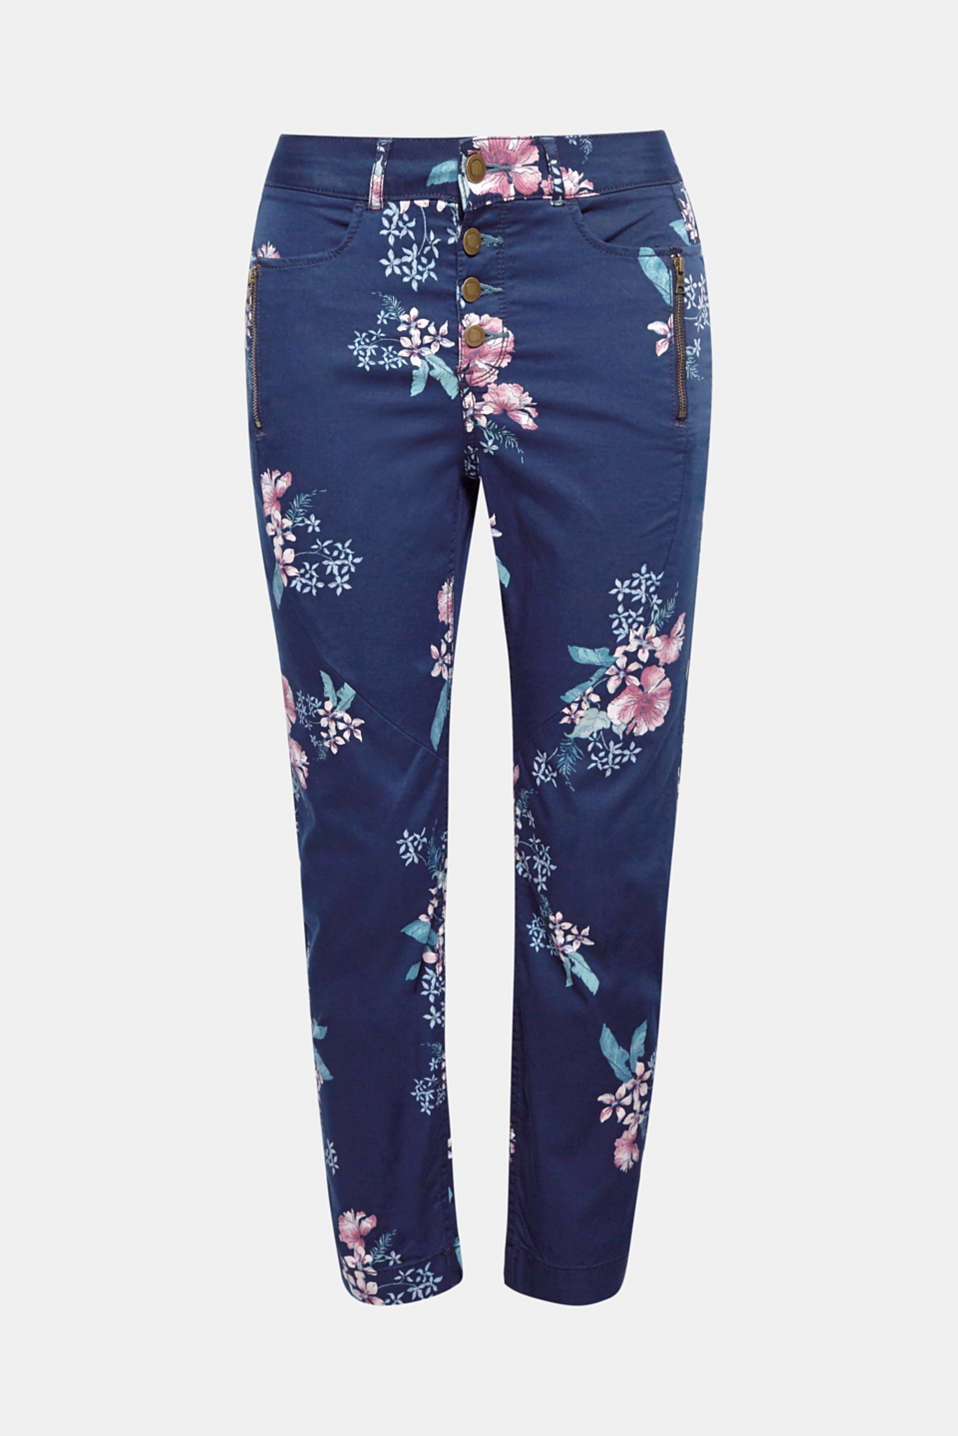 Invite spring into your wardrobe with these ankle-length chinos featuring a romantic floral print, made of cotton with added stretch for comfort.